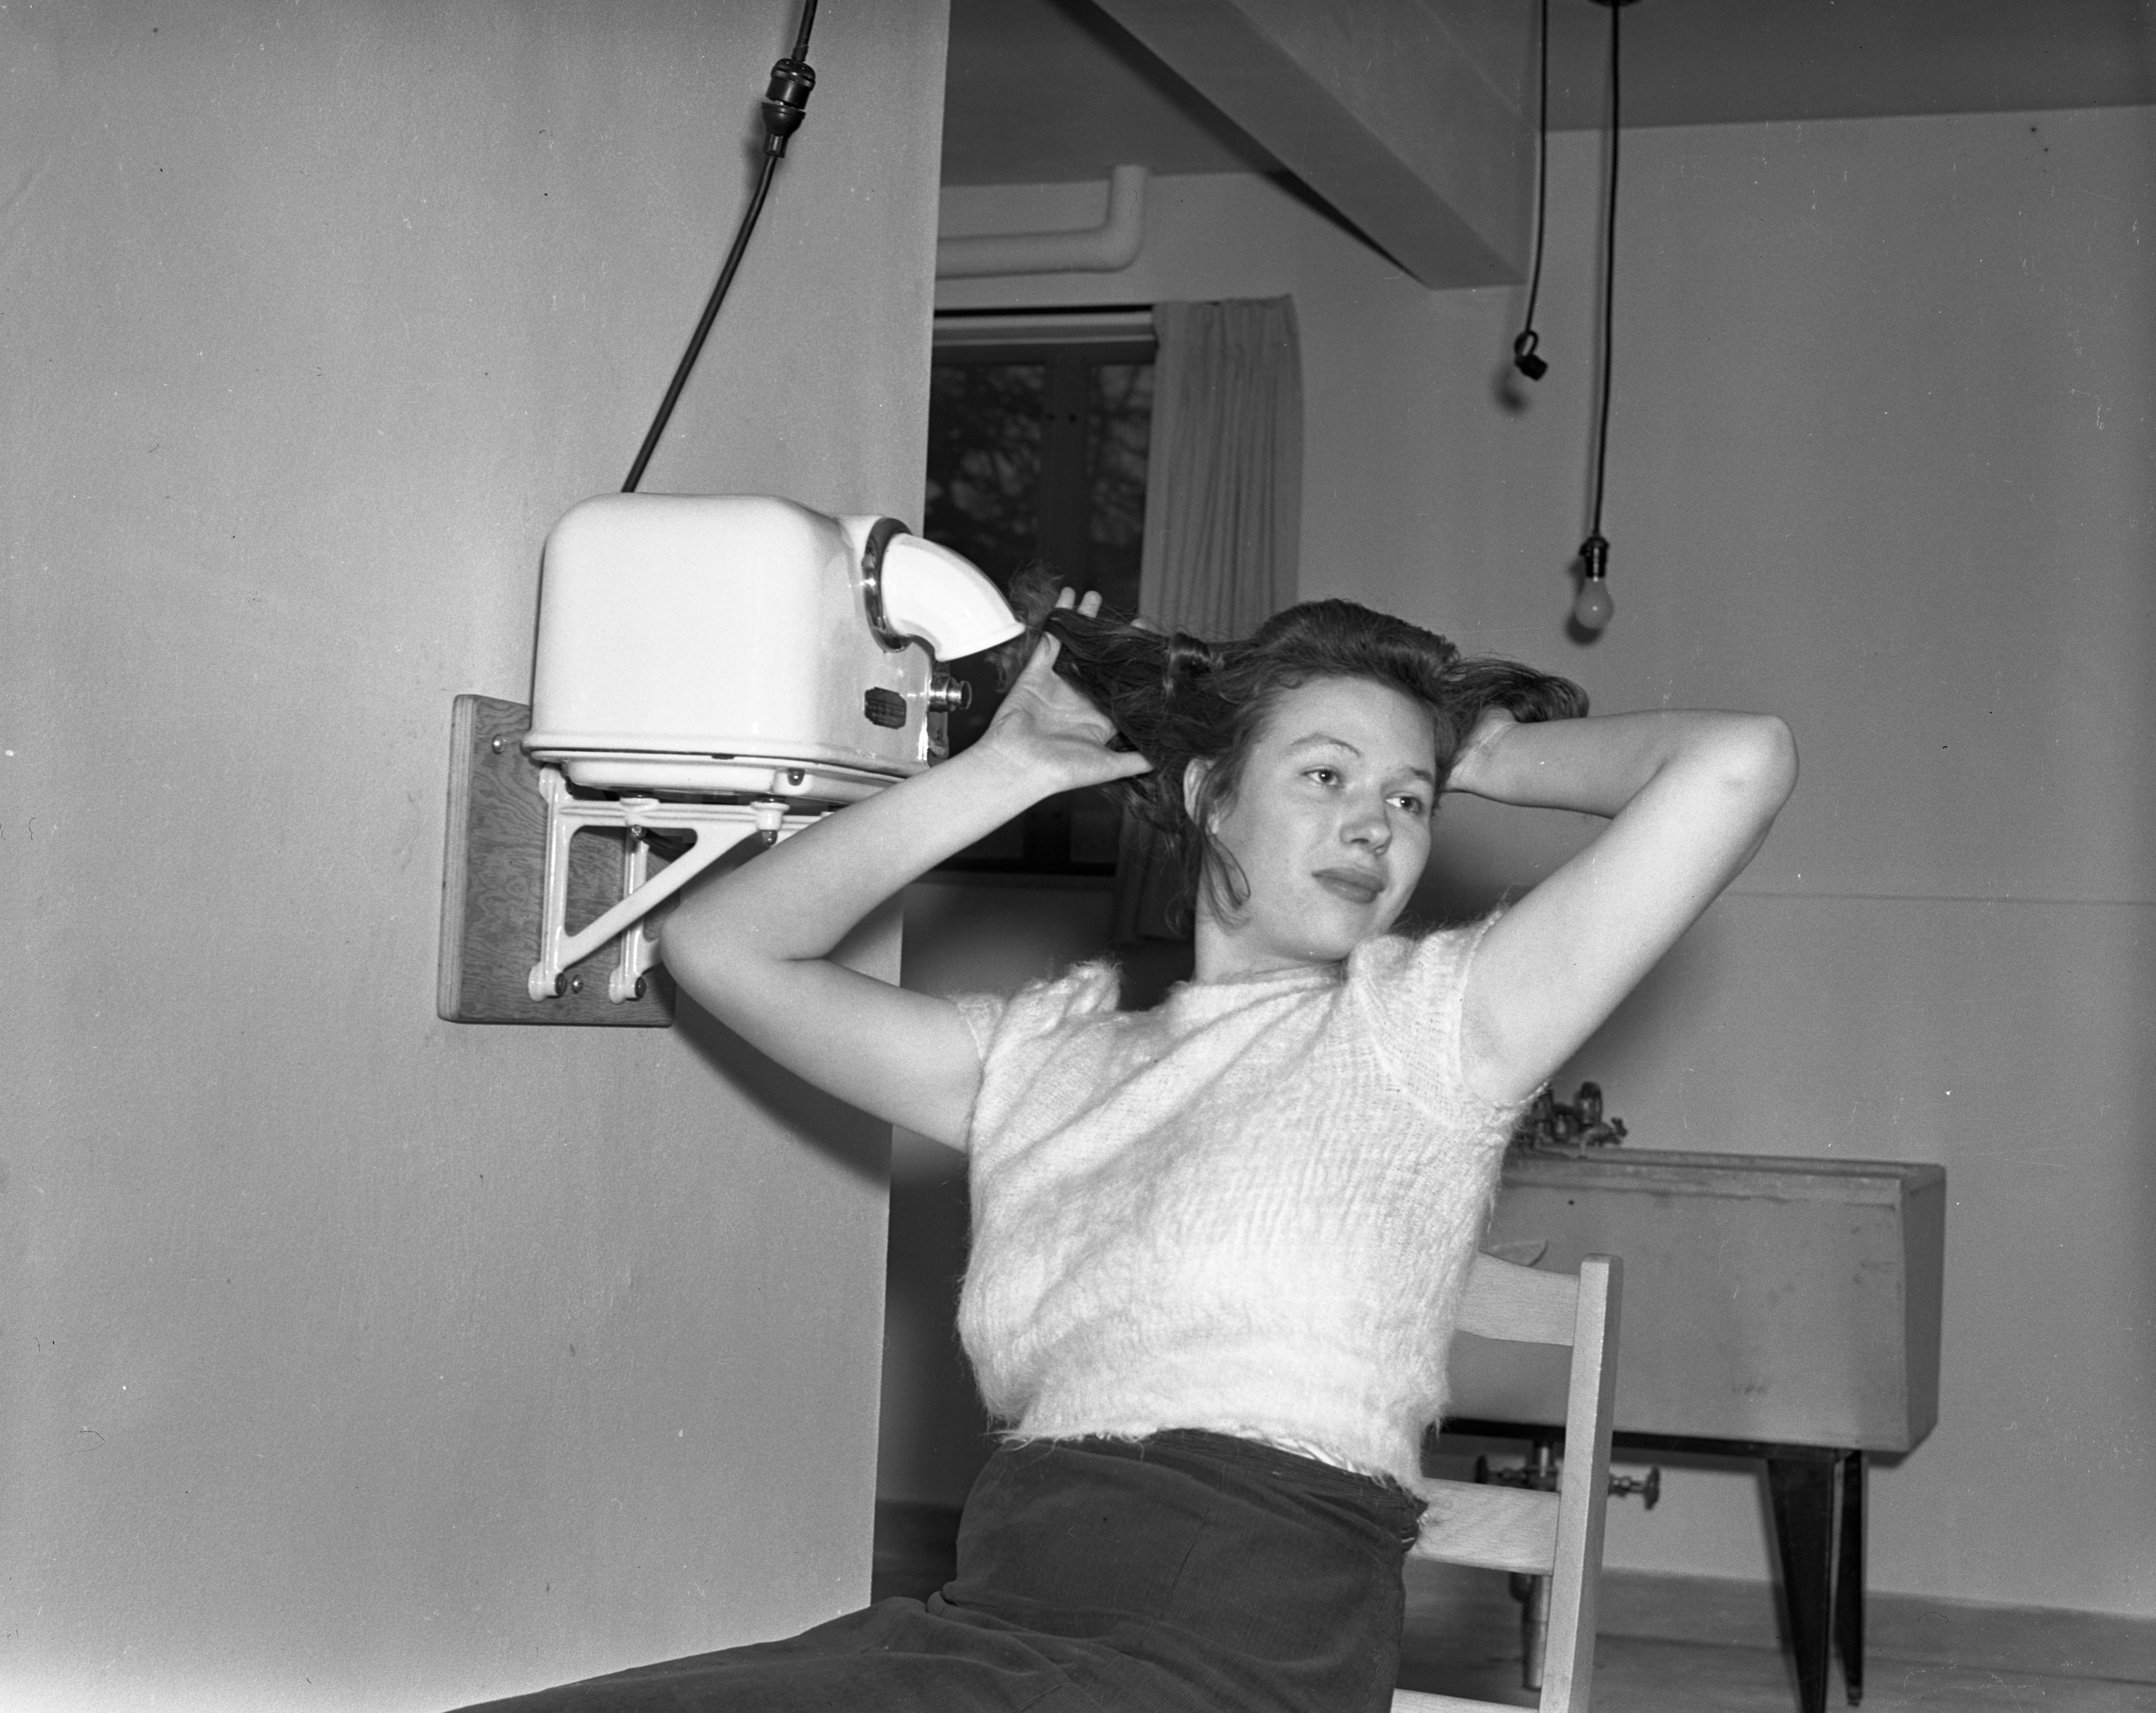 Girl with new hair dryer in Michigan State College dorm, undated image